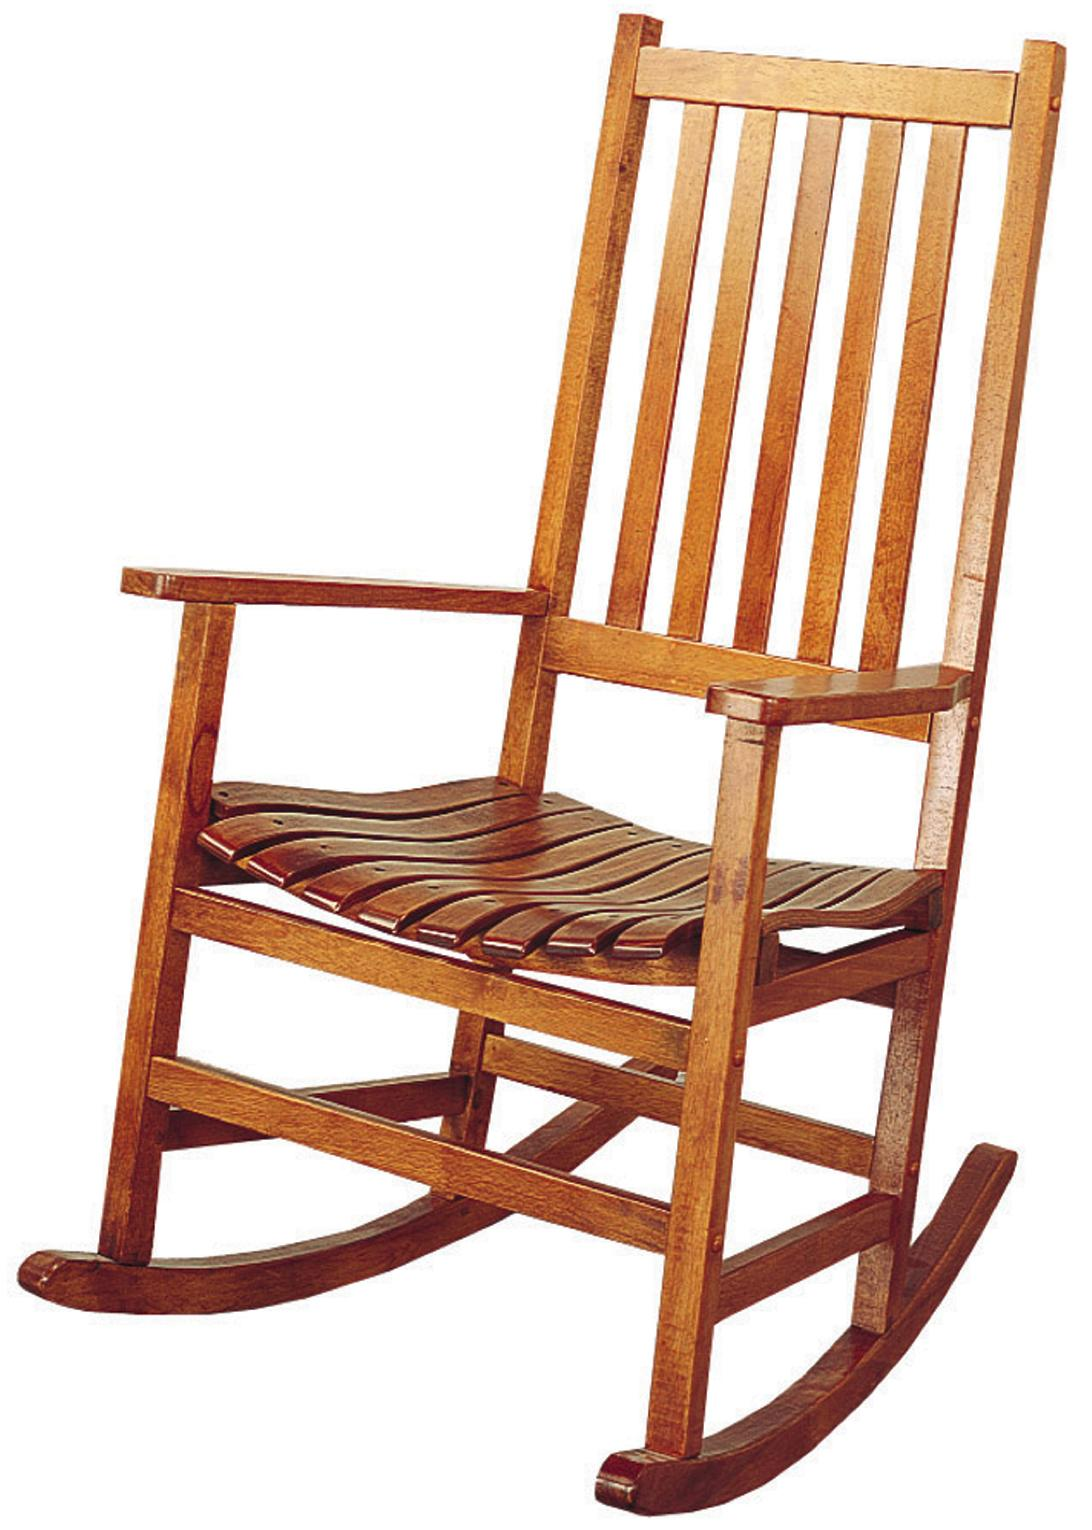 Sweater Rocking Chair. $159.00 Coaster Co.